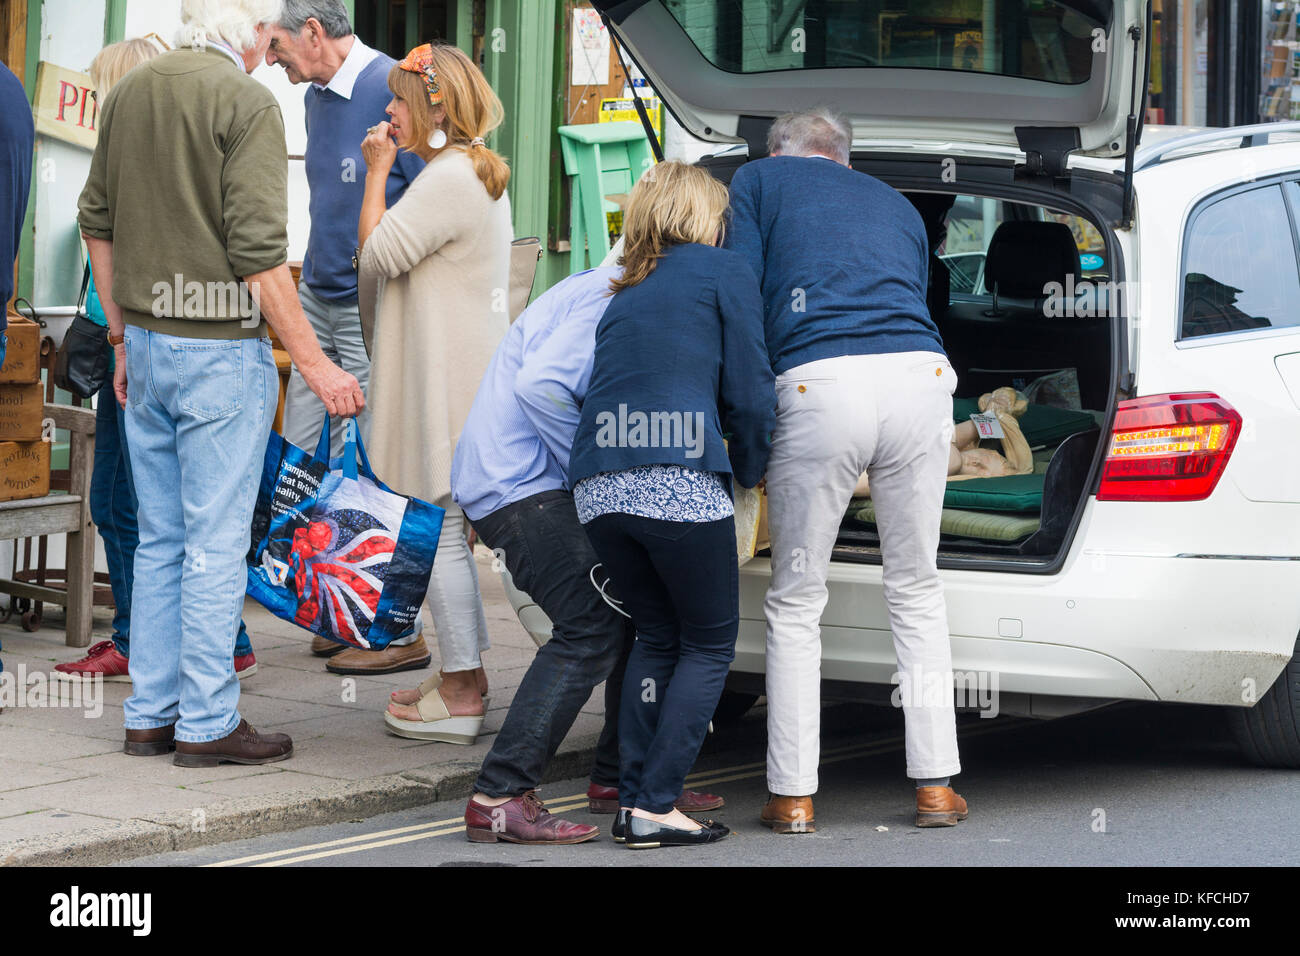 People helping to load up a hatchback car with goods after shopping in the UK. - Stock Image